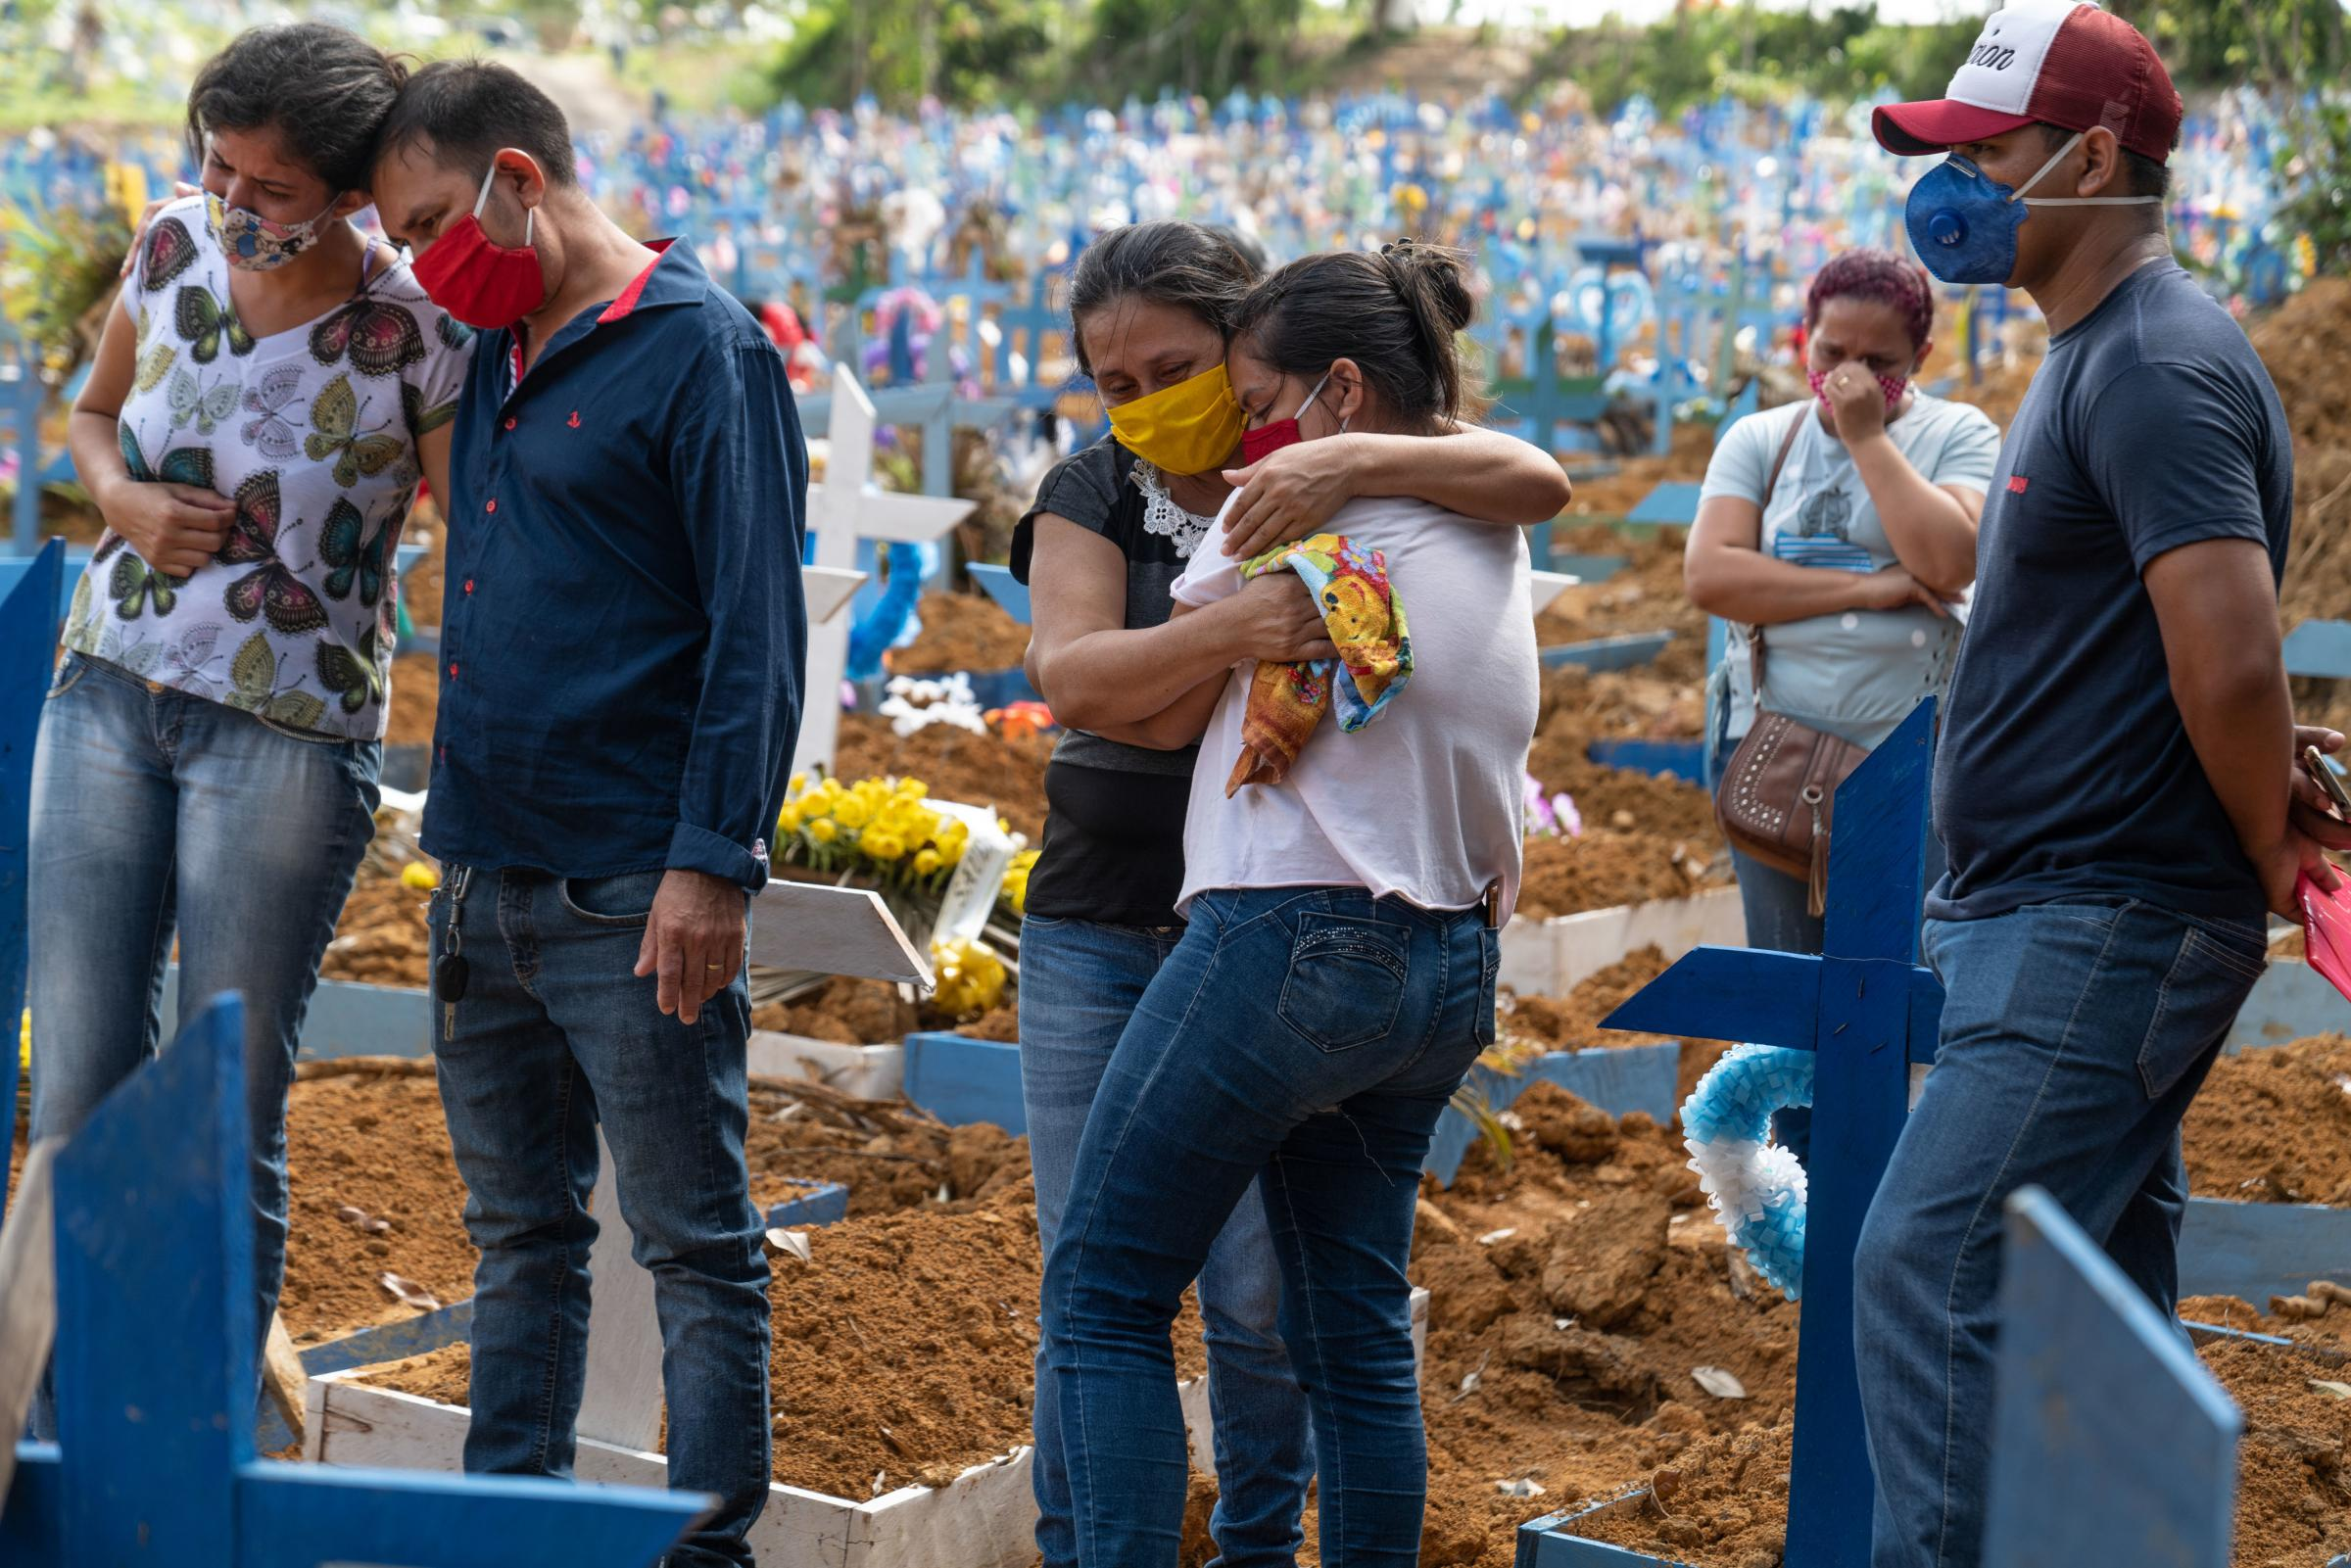 Pandemic 2020: Photojournalist Veronique de Viguerie documented mass burials in a cemetery during the pandemic in Manaus, Brazil